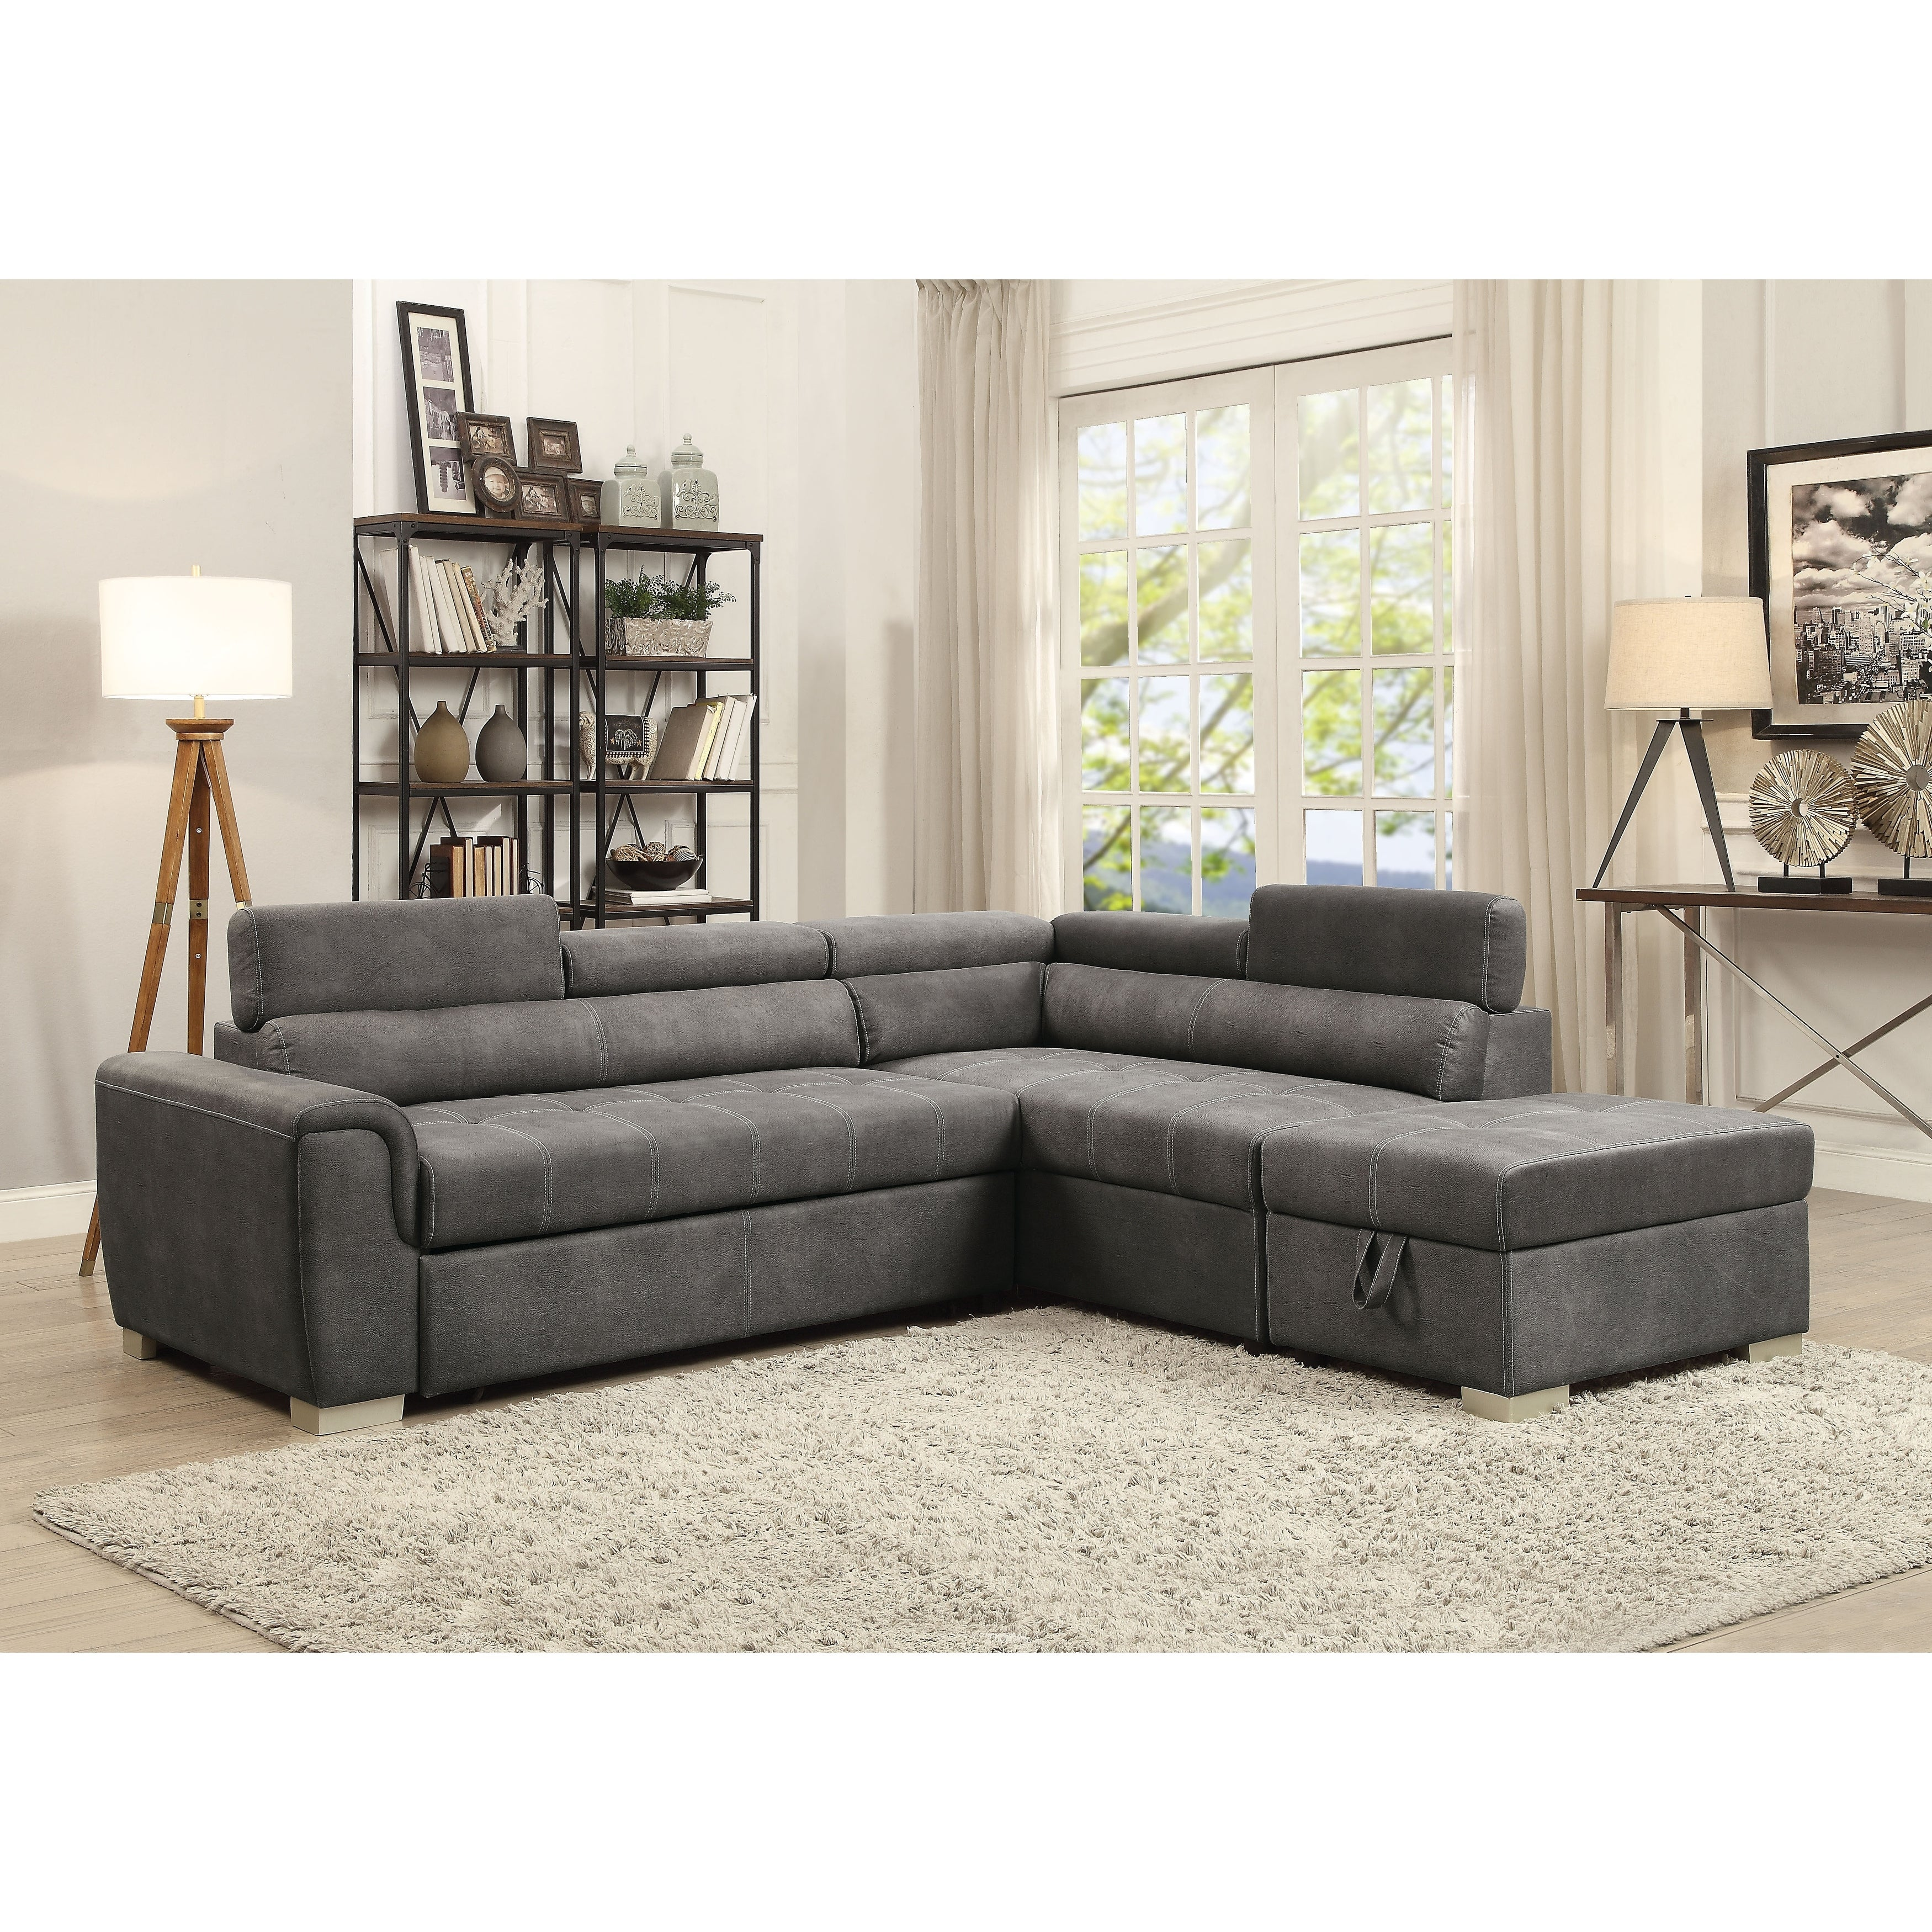 Acme Thelma Grey Microfiber L shaped Sectional Sofa with Sleeper